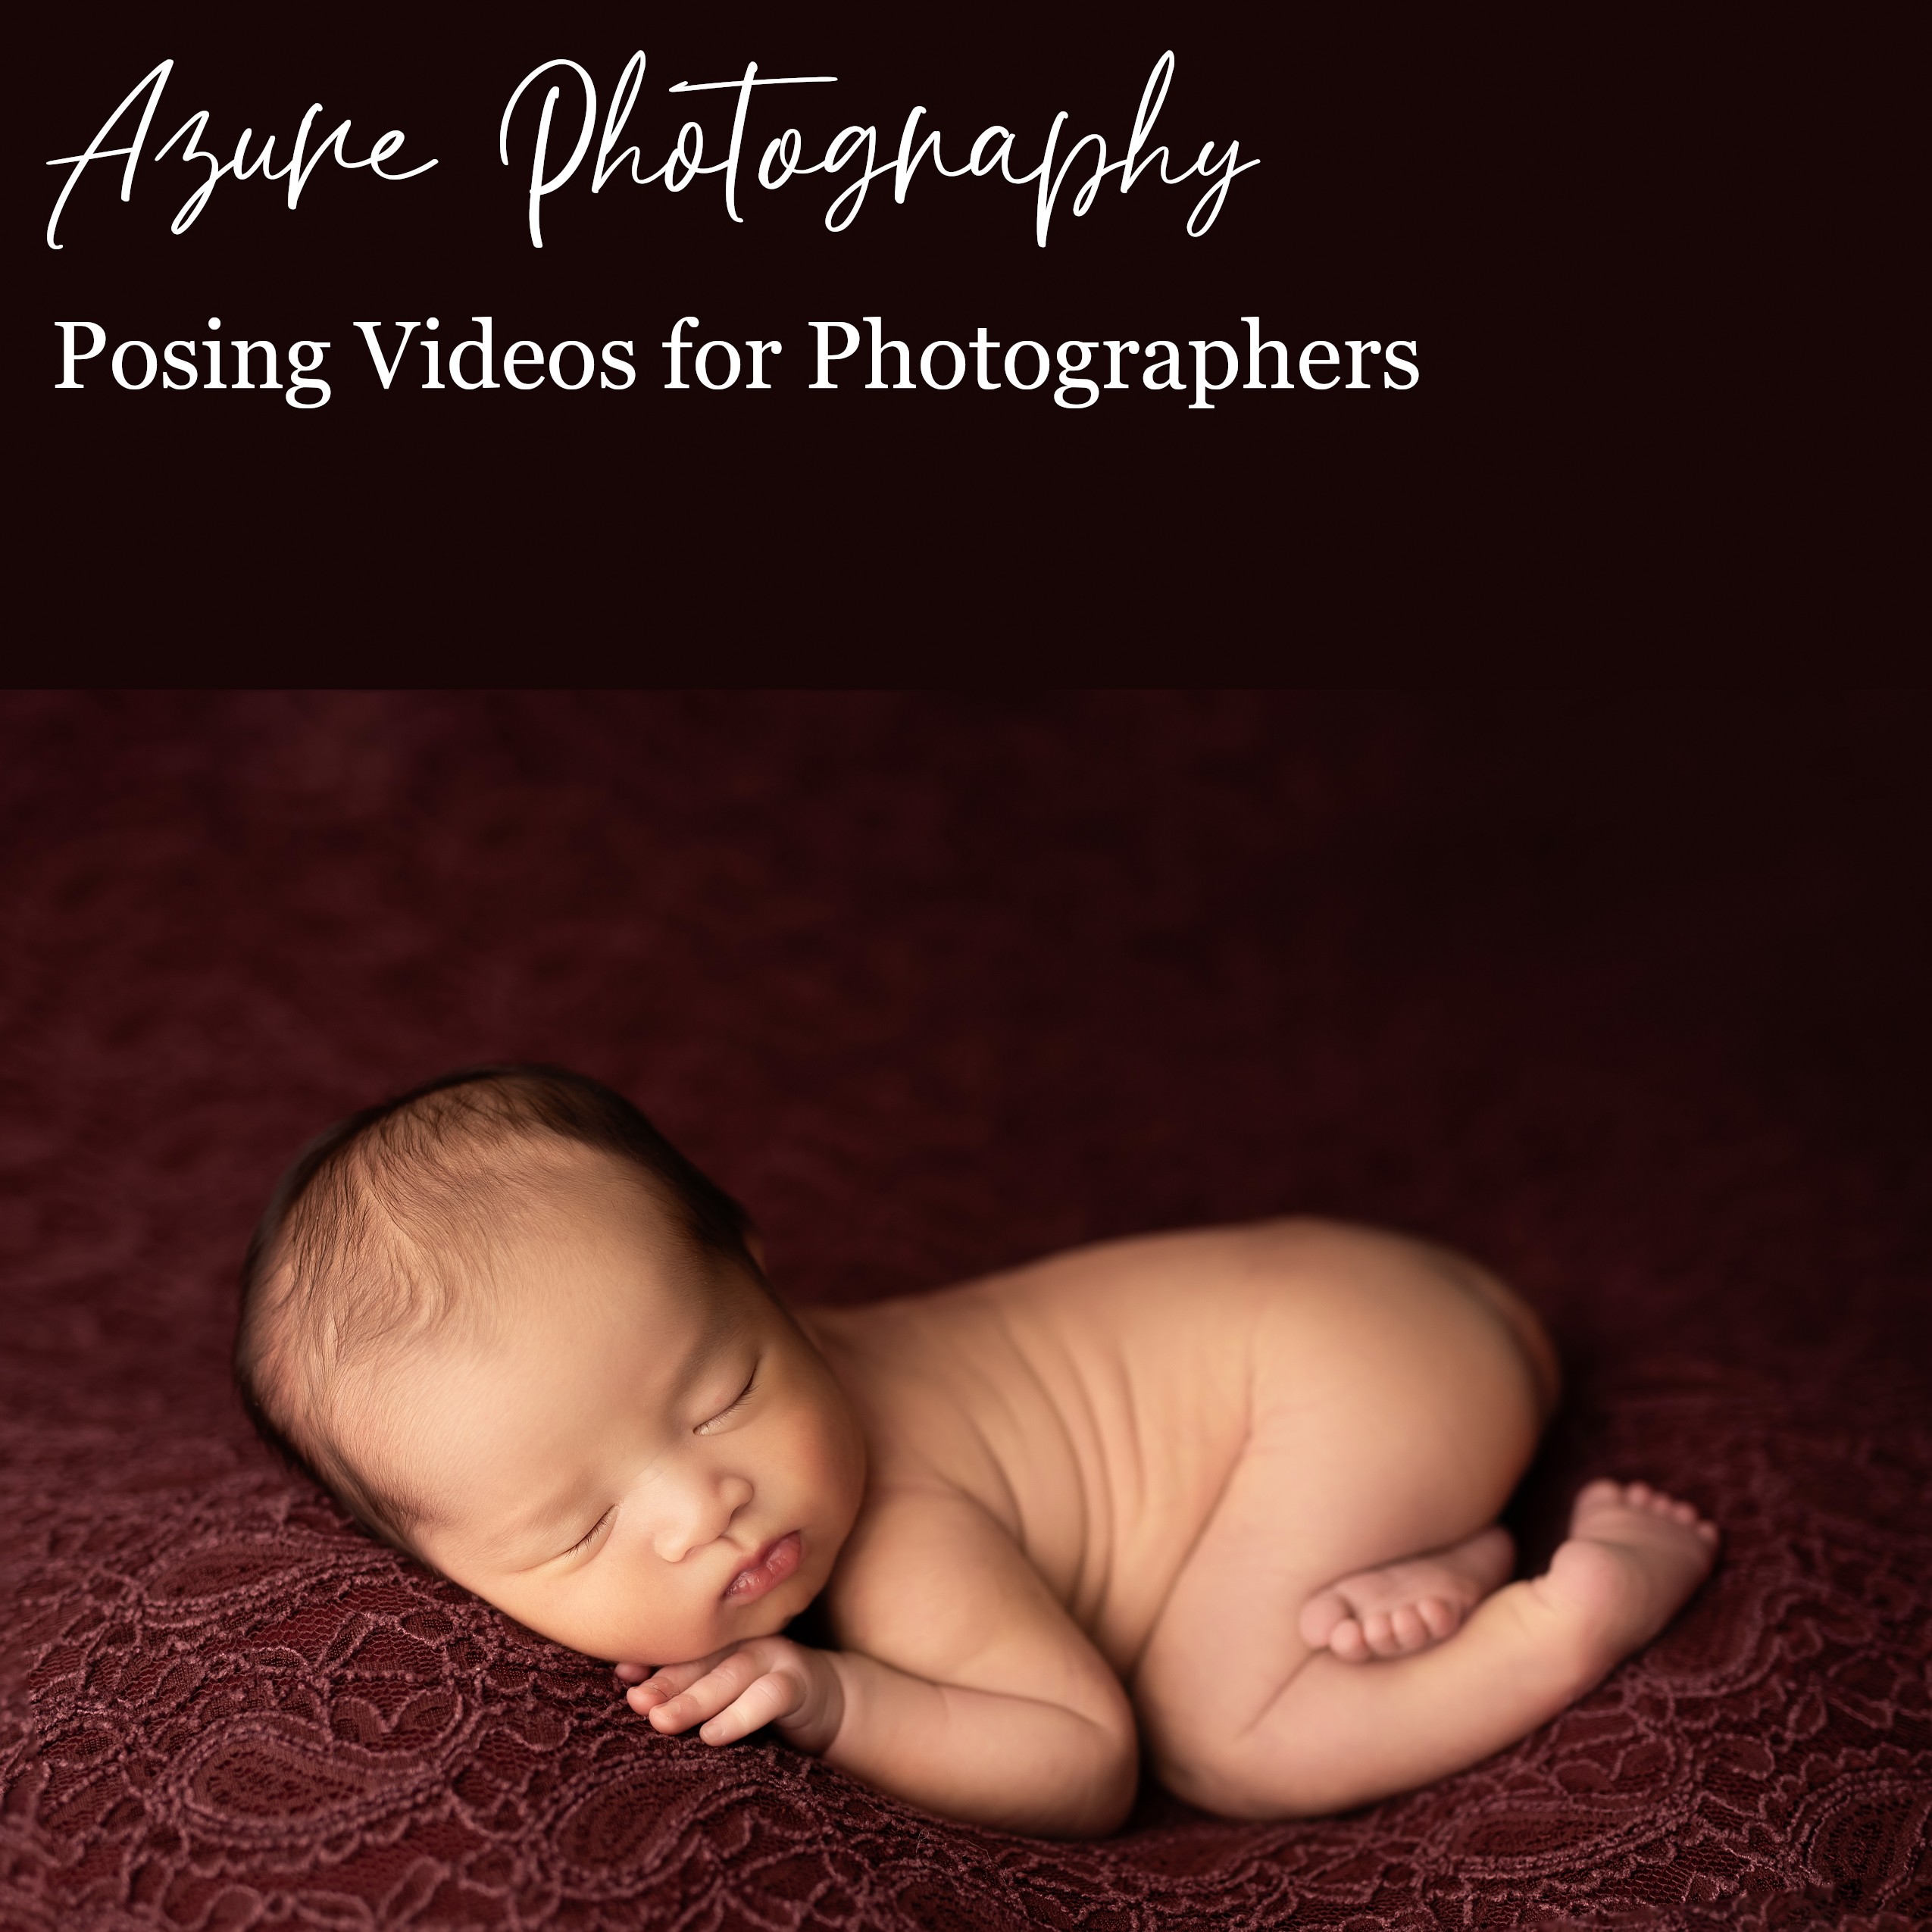 Posing videos for Photographers (front page)